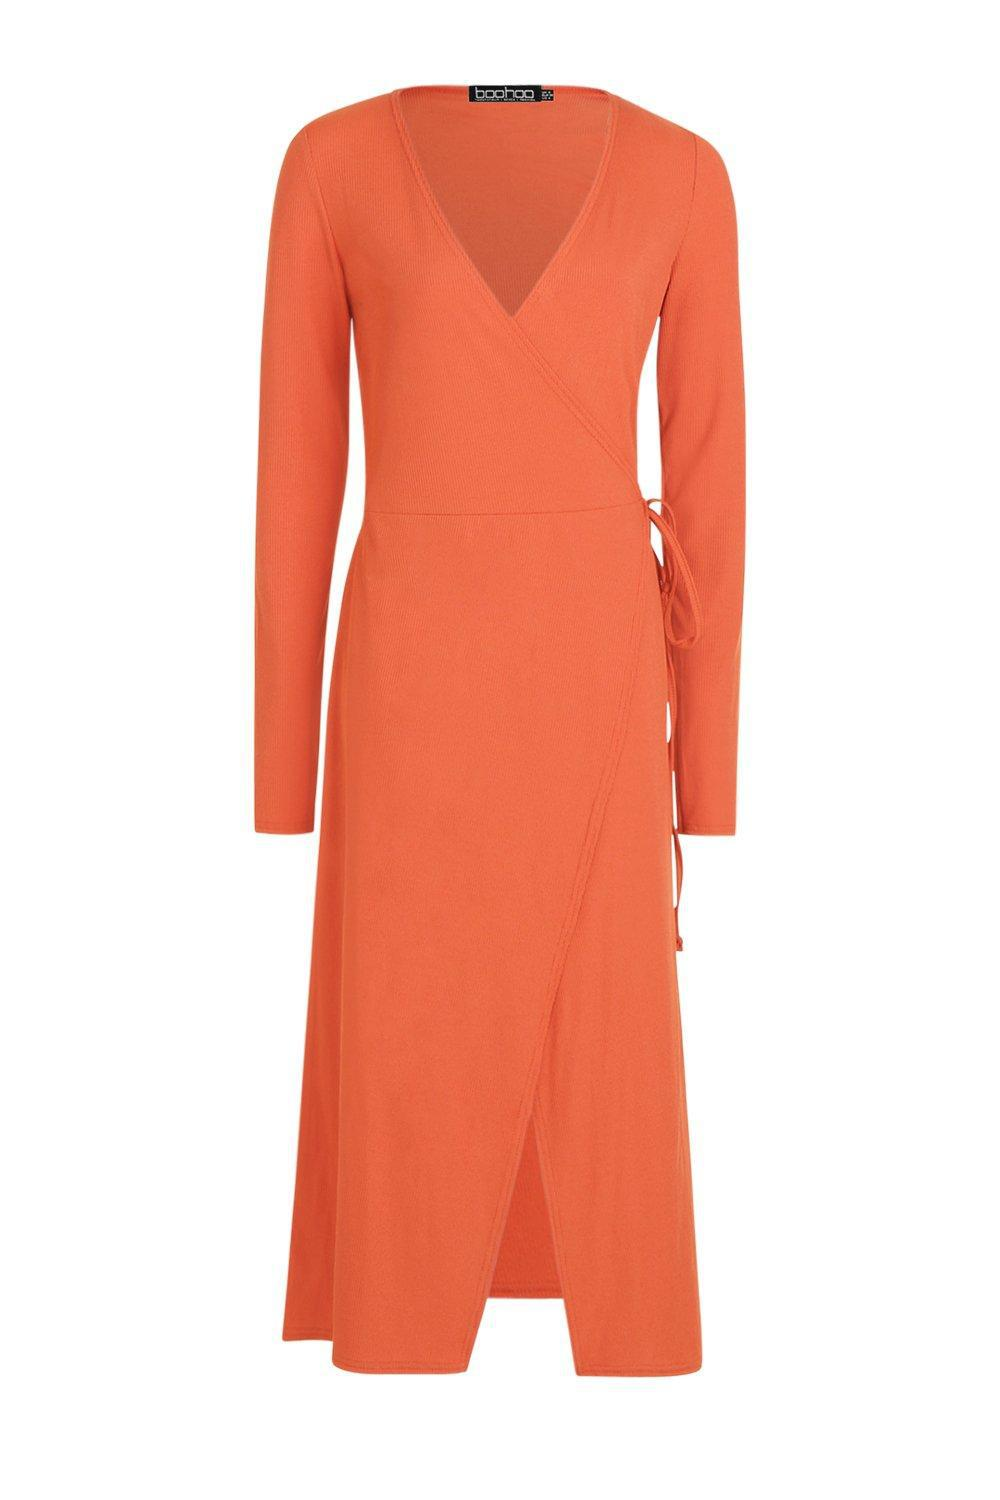 1906391df668 Boohoo - Orange Tall Rib Wrap Jersey Dress - Lyst. View fullscreen